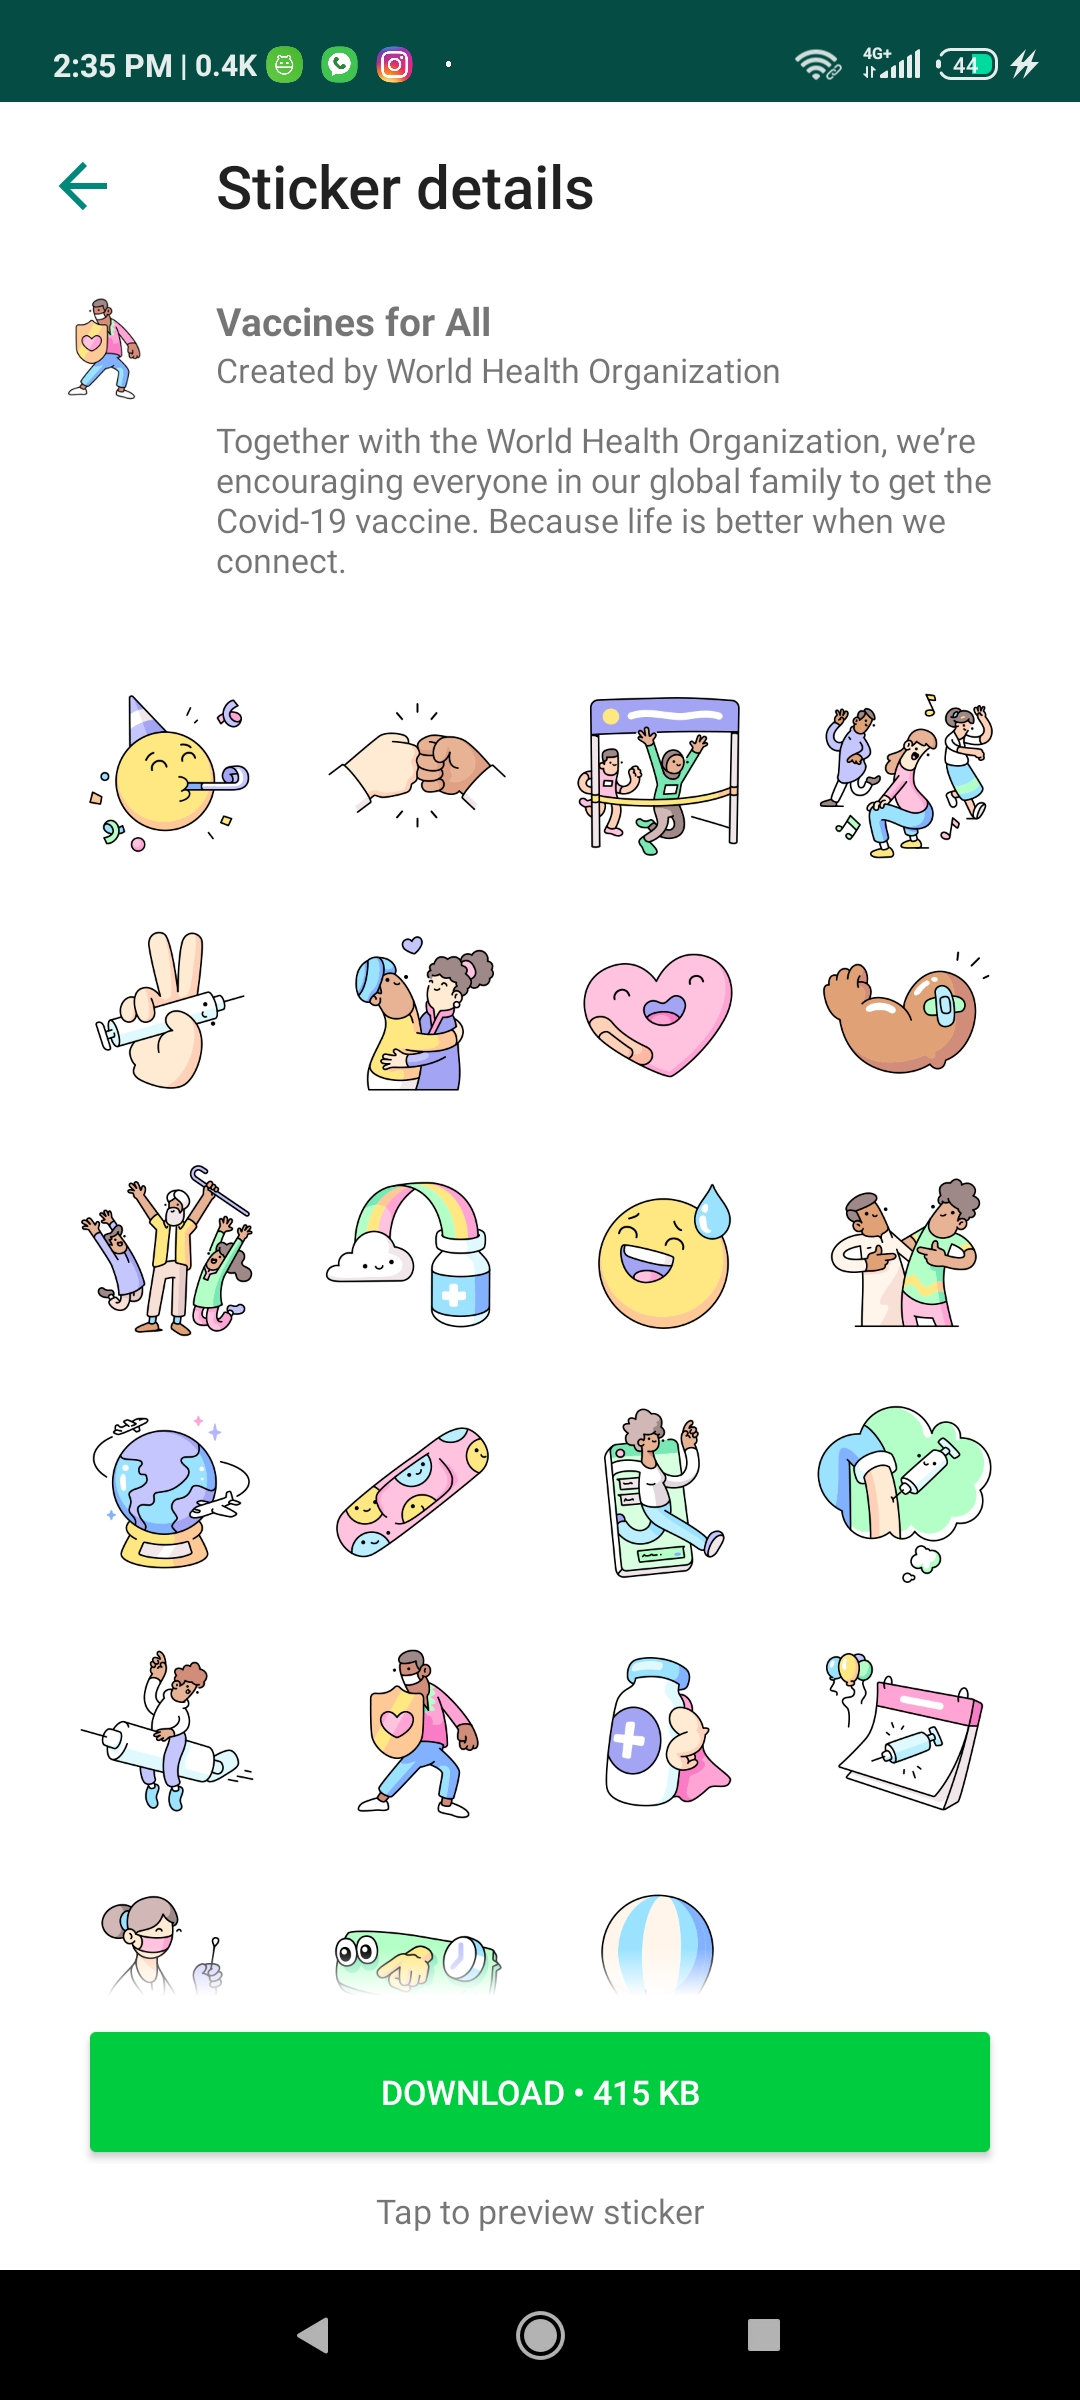 whatsapp vaccine for all stickers